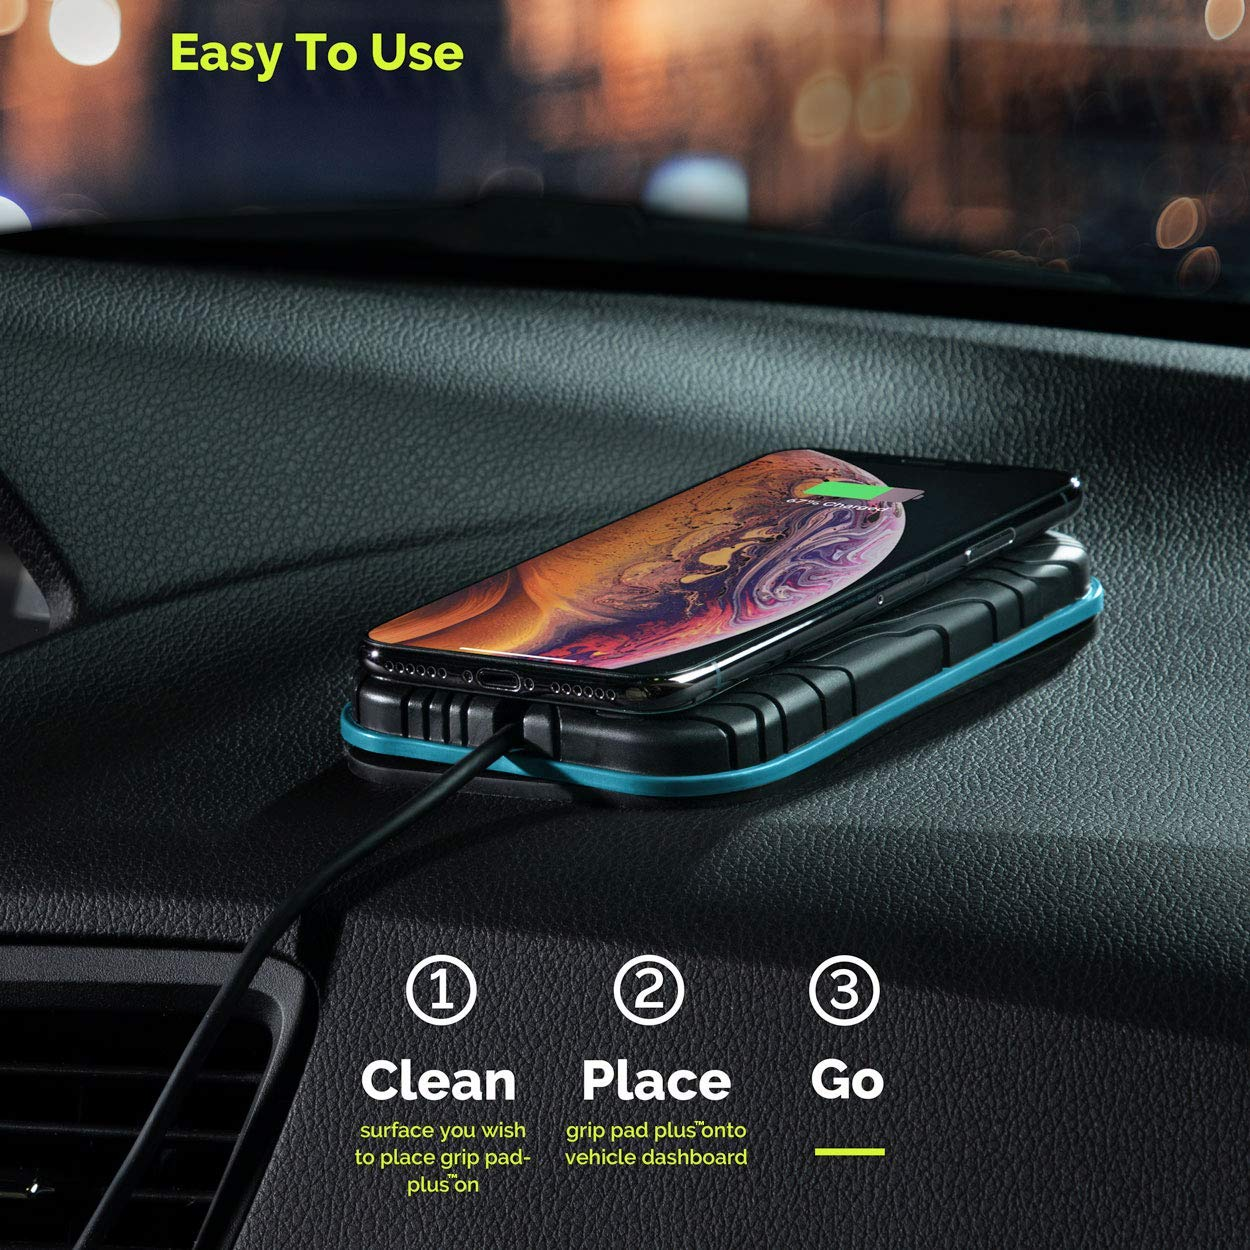 Black Wireless Car Charger and Phone Holder for Car 10 W Fast Charge Wireless Charging Grip Pad Plus Qi Wireless Charger Sticks to All Automotive Dashboards Simplest Car Phone Mount Available